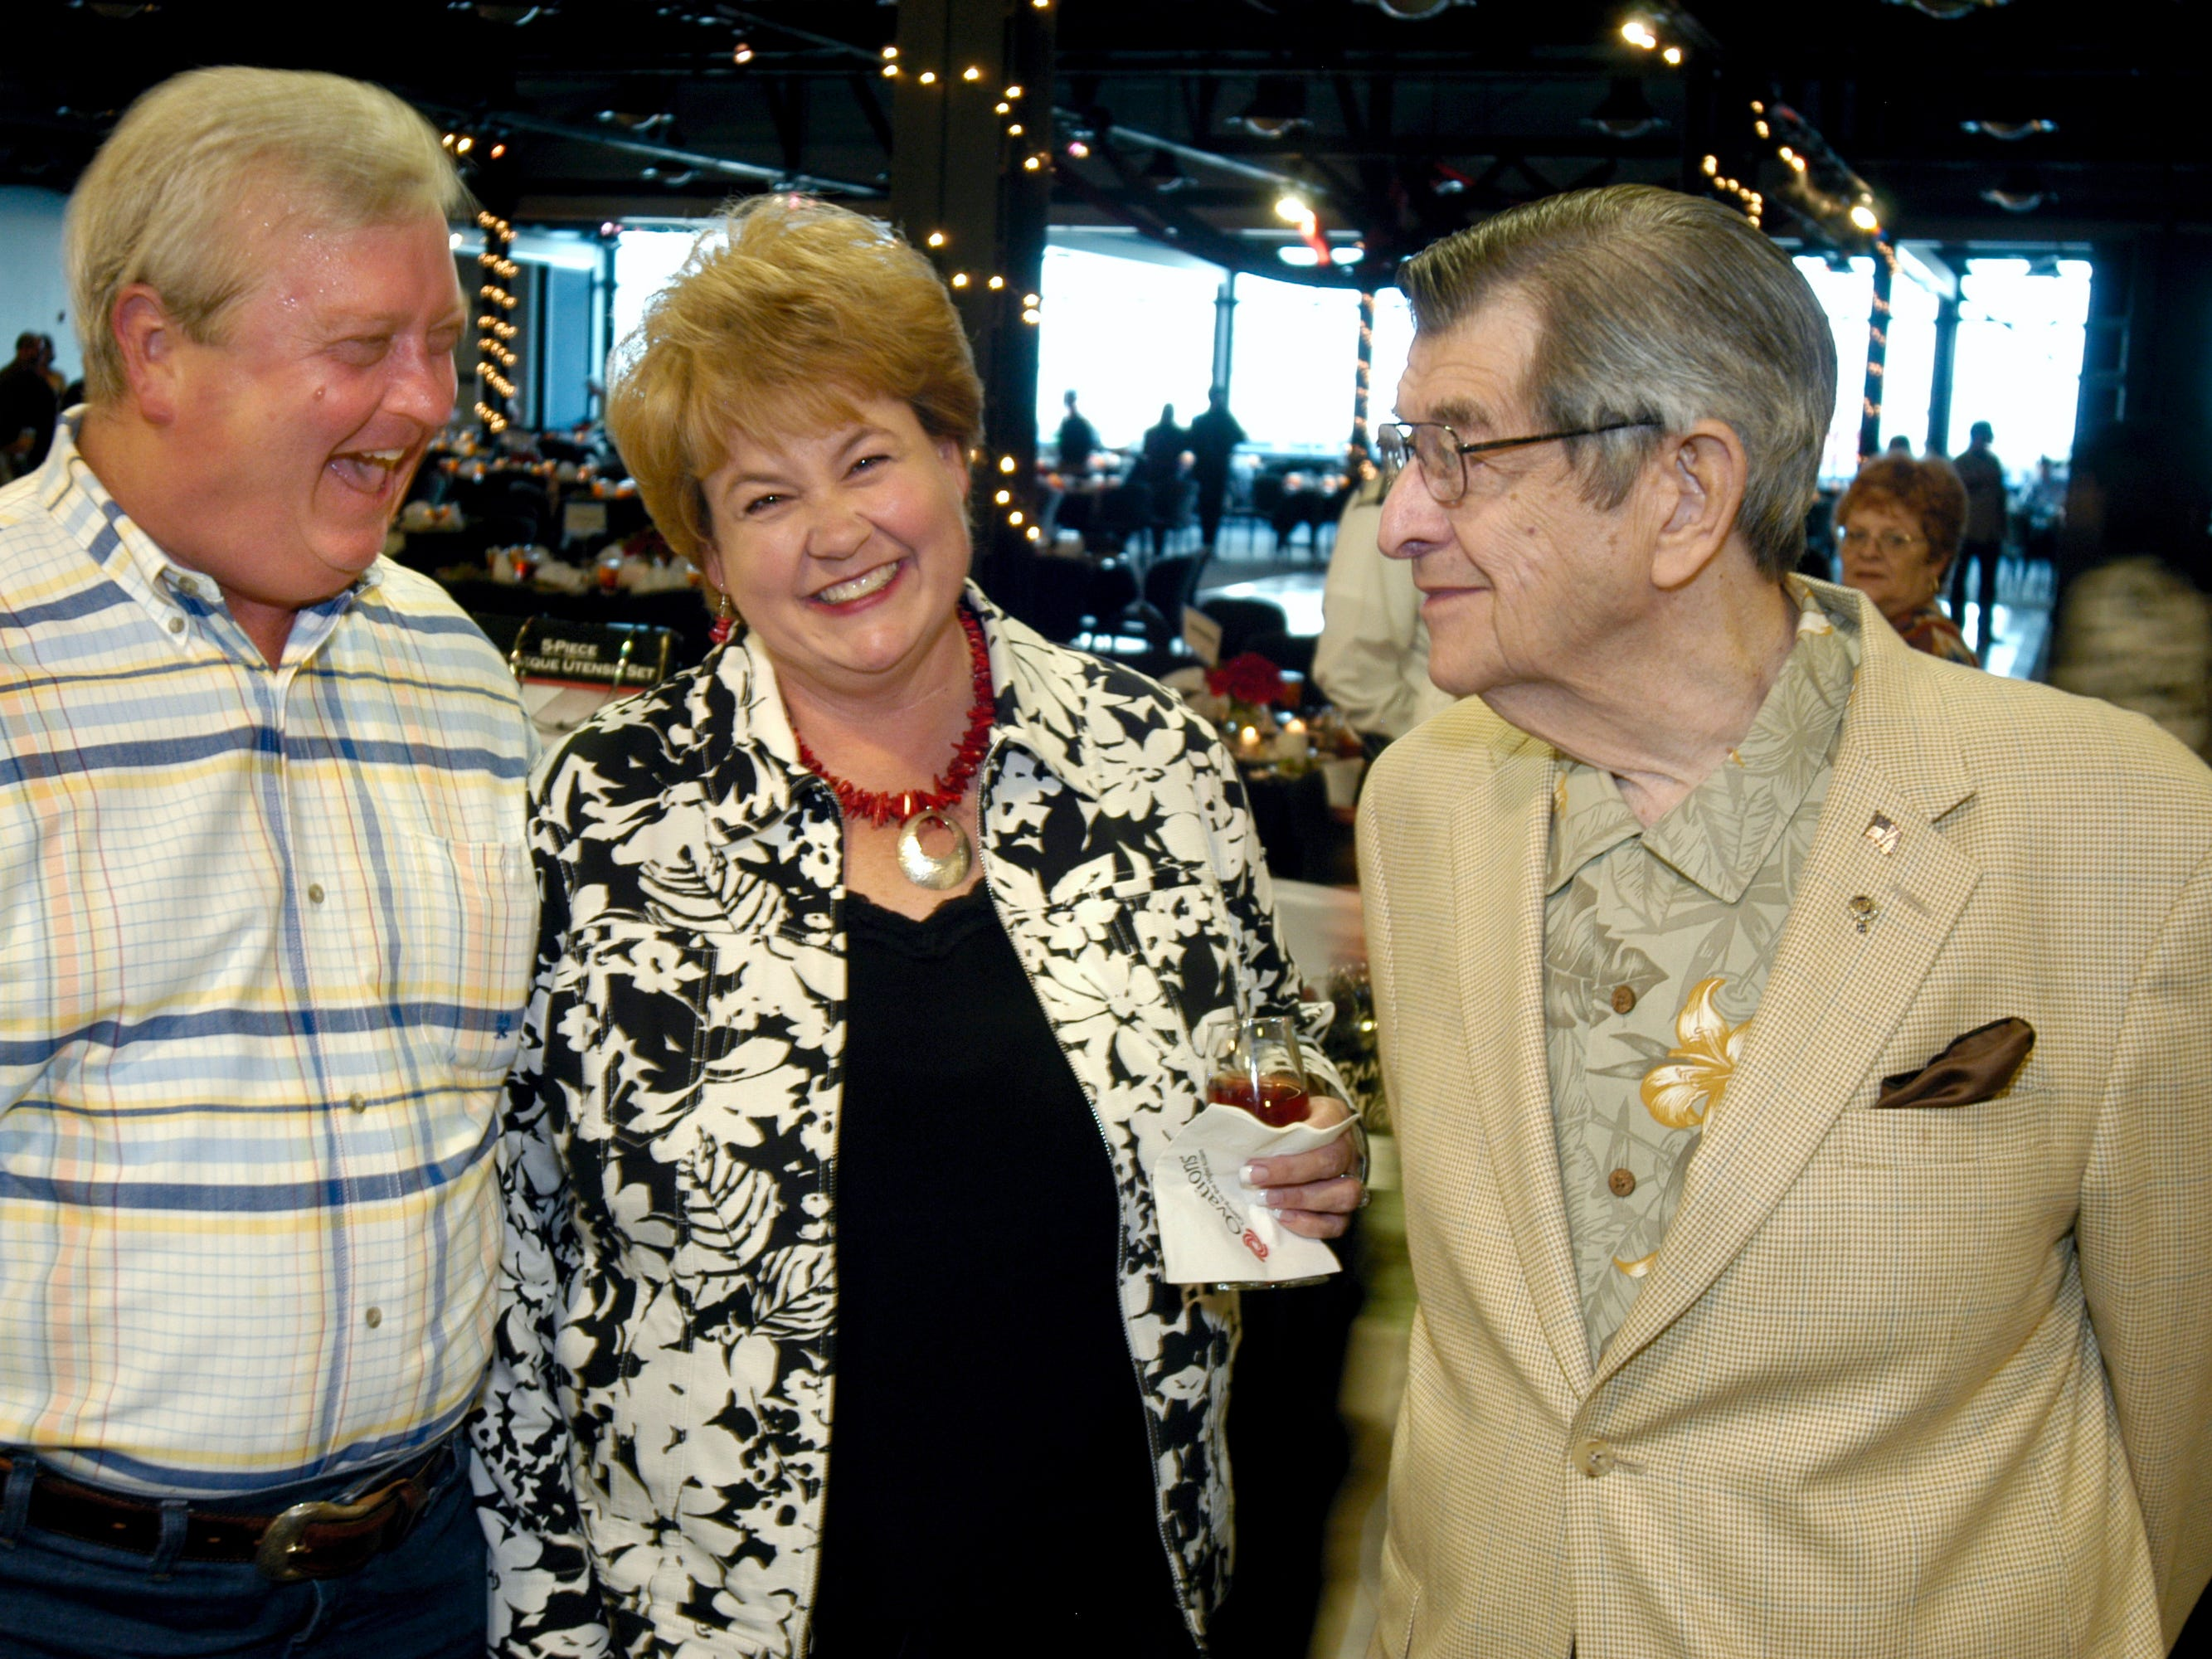 Alan Wilson (from left) Catrina Wilson and Joe Sheinberg  attend a Great Expectations fundraiser, benefiting the Women's Shelter of South Texas, now the Purple Door, in 2009.